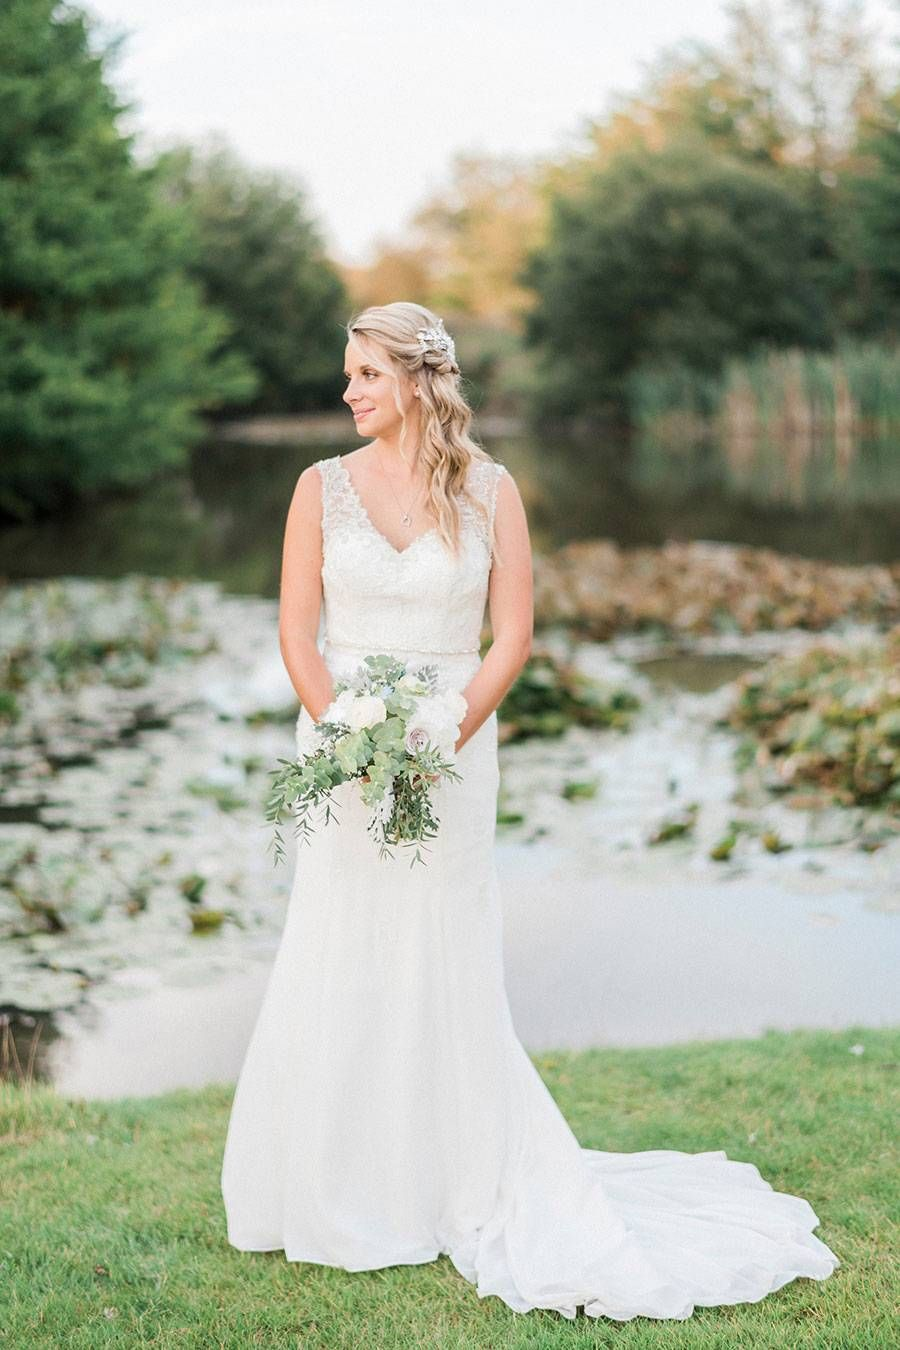 Ross wedding dress  An Elegant Rustic Wedding with Pastel Grey u Hessian Details Holly